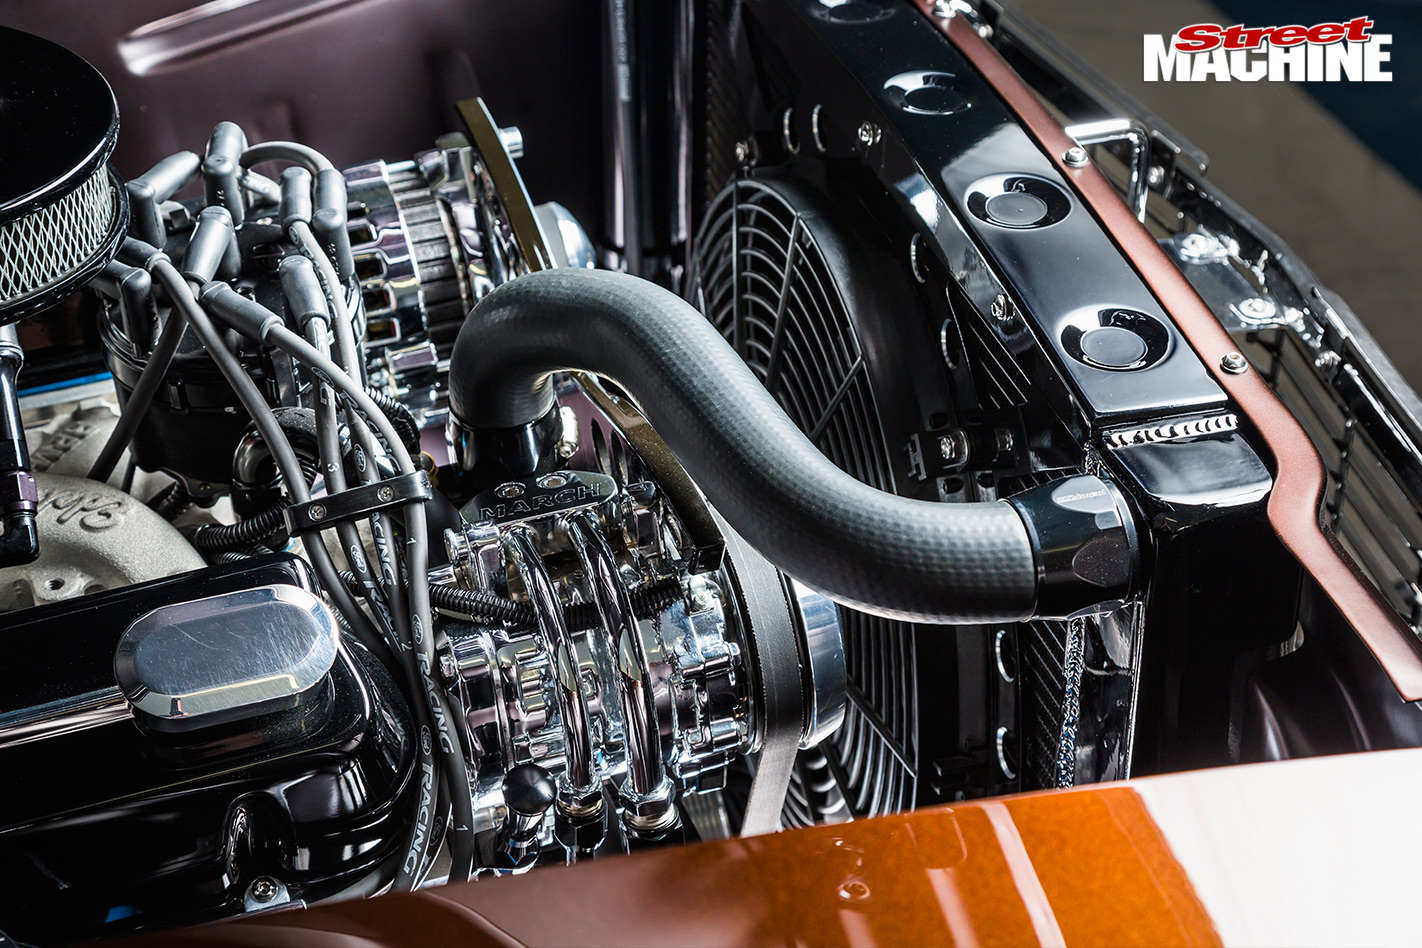 Ford -falcon -engine -detail -2